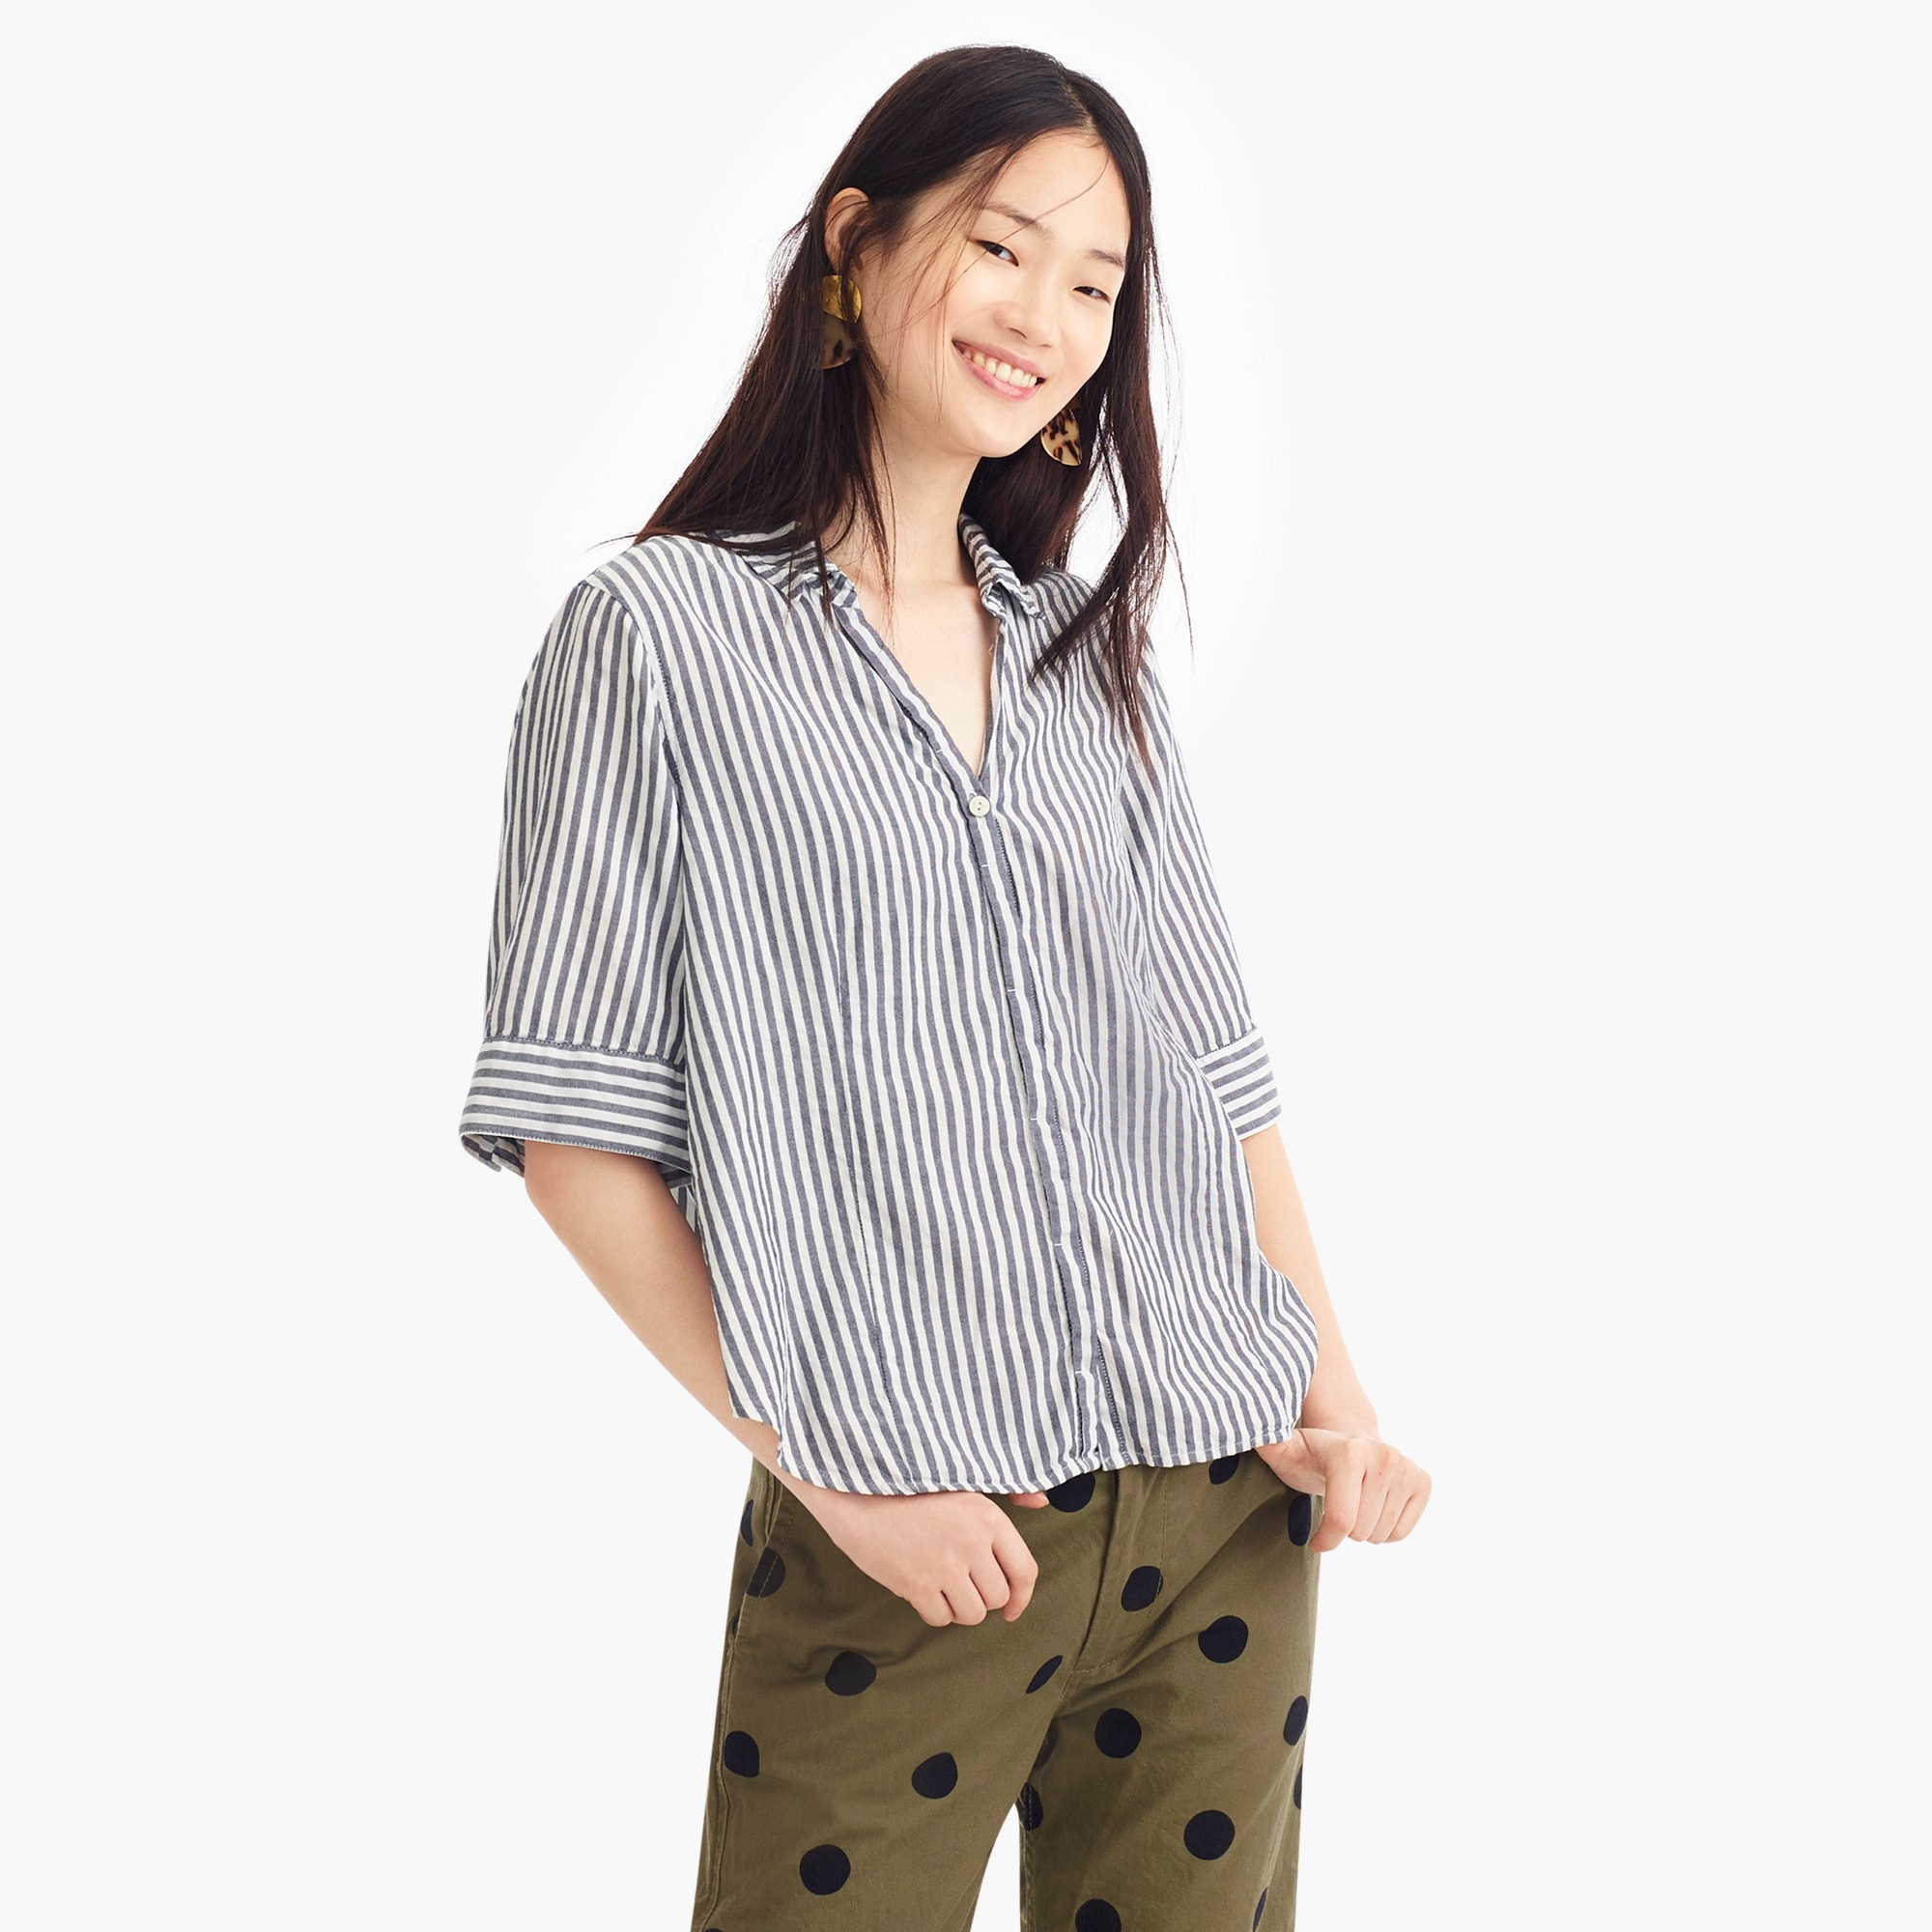 Short-sleeve button-up shirt in stripe